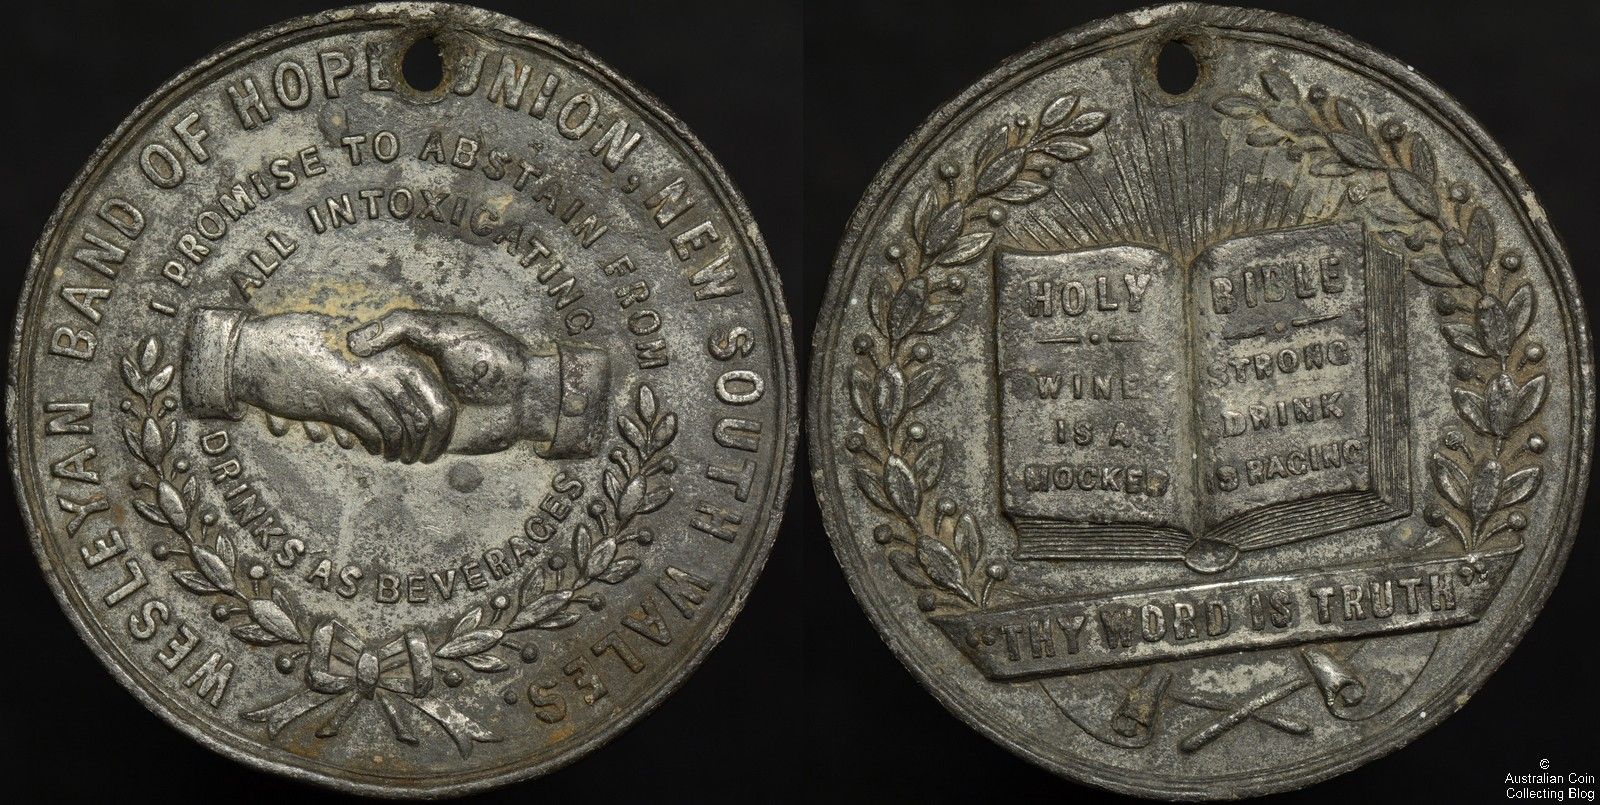 Circa 1880 Wesleyan Band of Hope Union New South Wales Medal